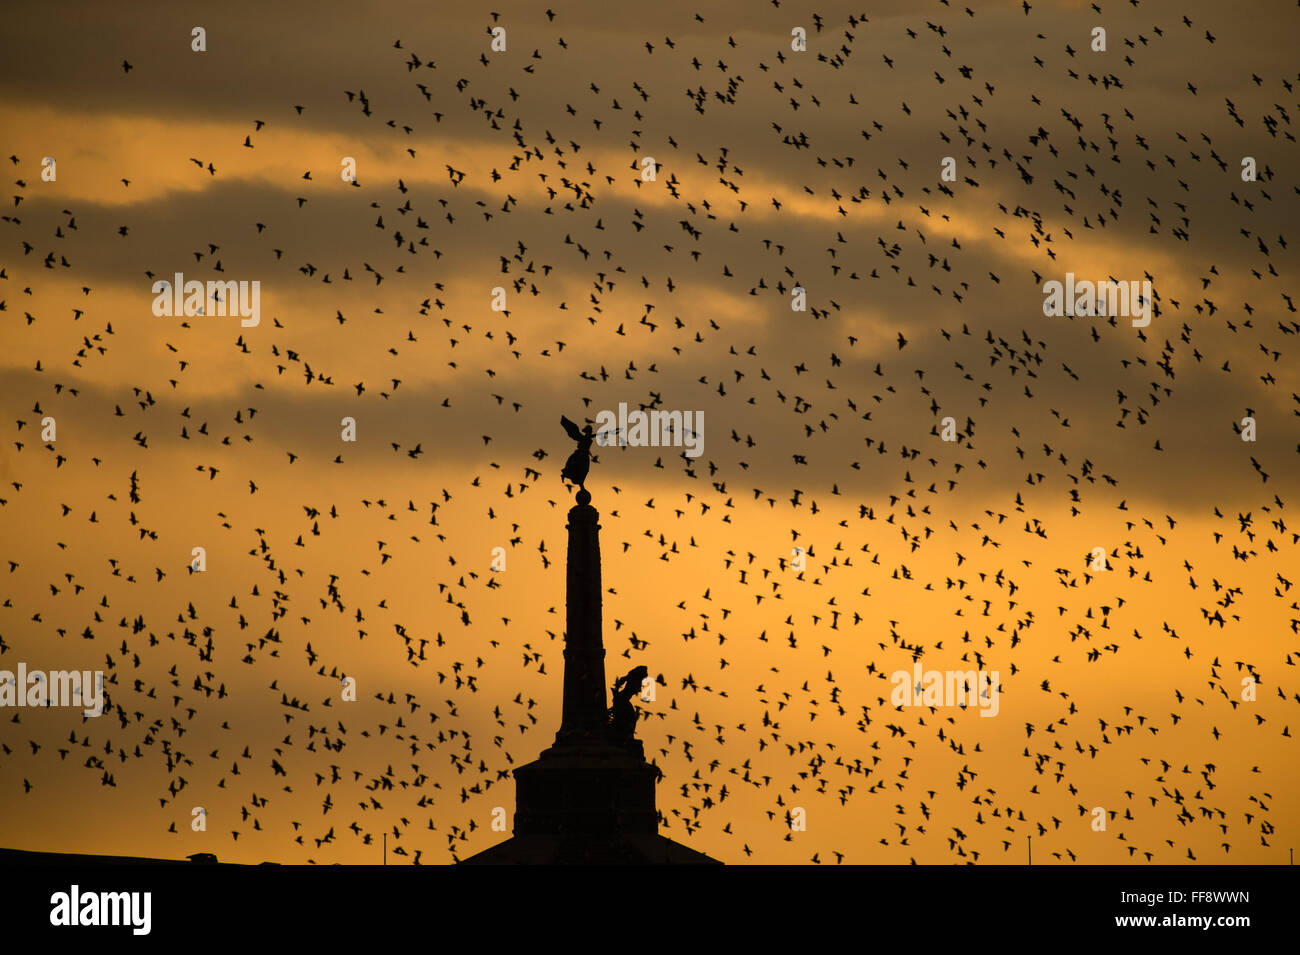 Aberystwyth, Wales, UK. 11th February, 2016.  UK weather: A flock of thousands of tiny starlings fly in huge 'murmurations' - Stock Image